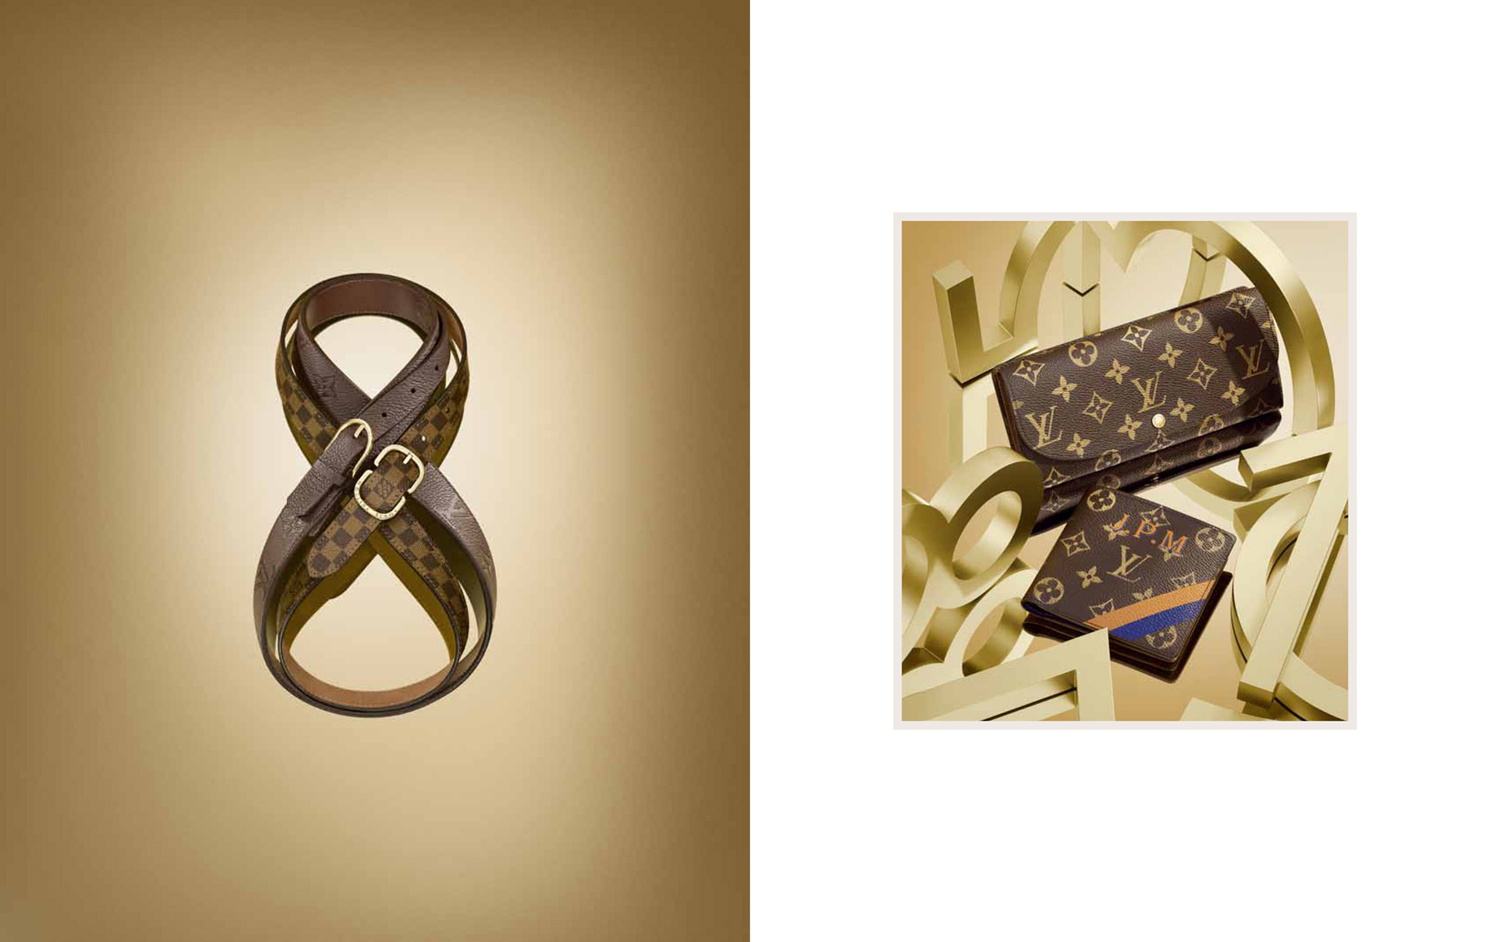 Magnus-Naddermier-Louis-Vuitton_XMAS12_Brochure-Photo-Toby-McFarlan-Pond-06.jpg